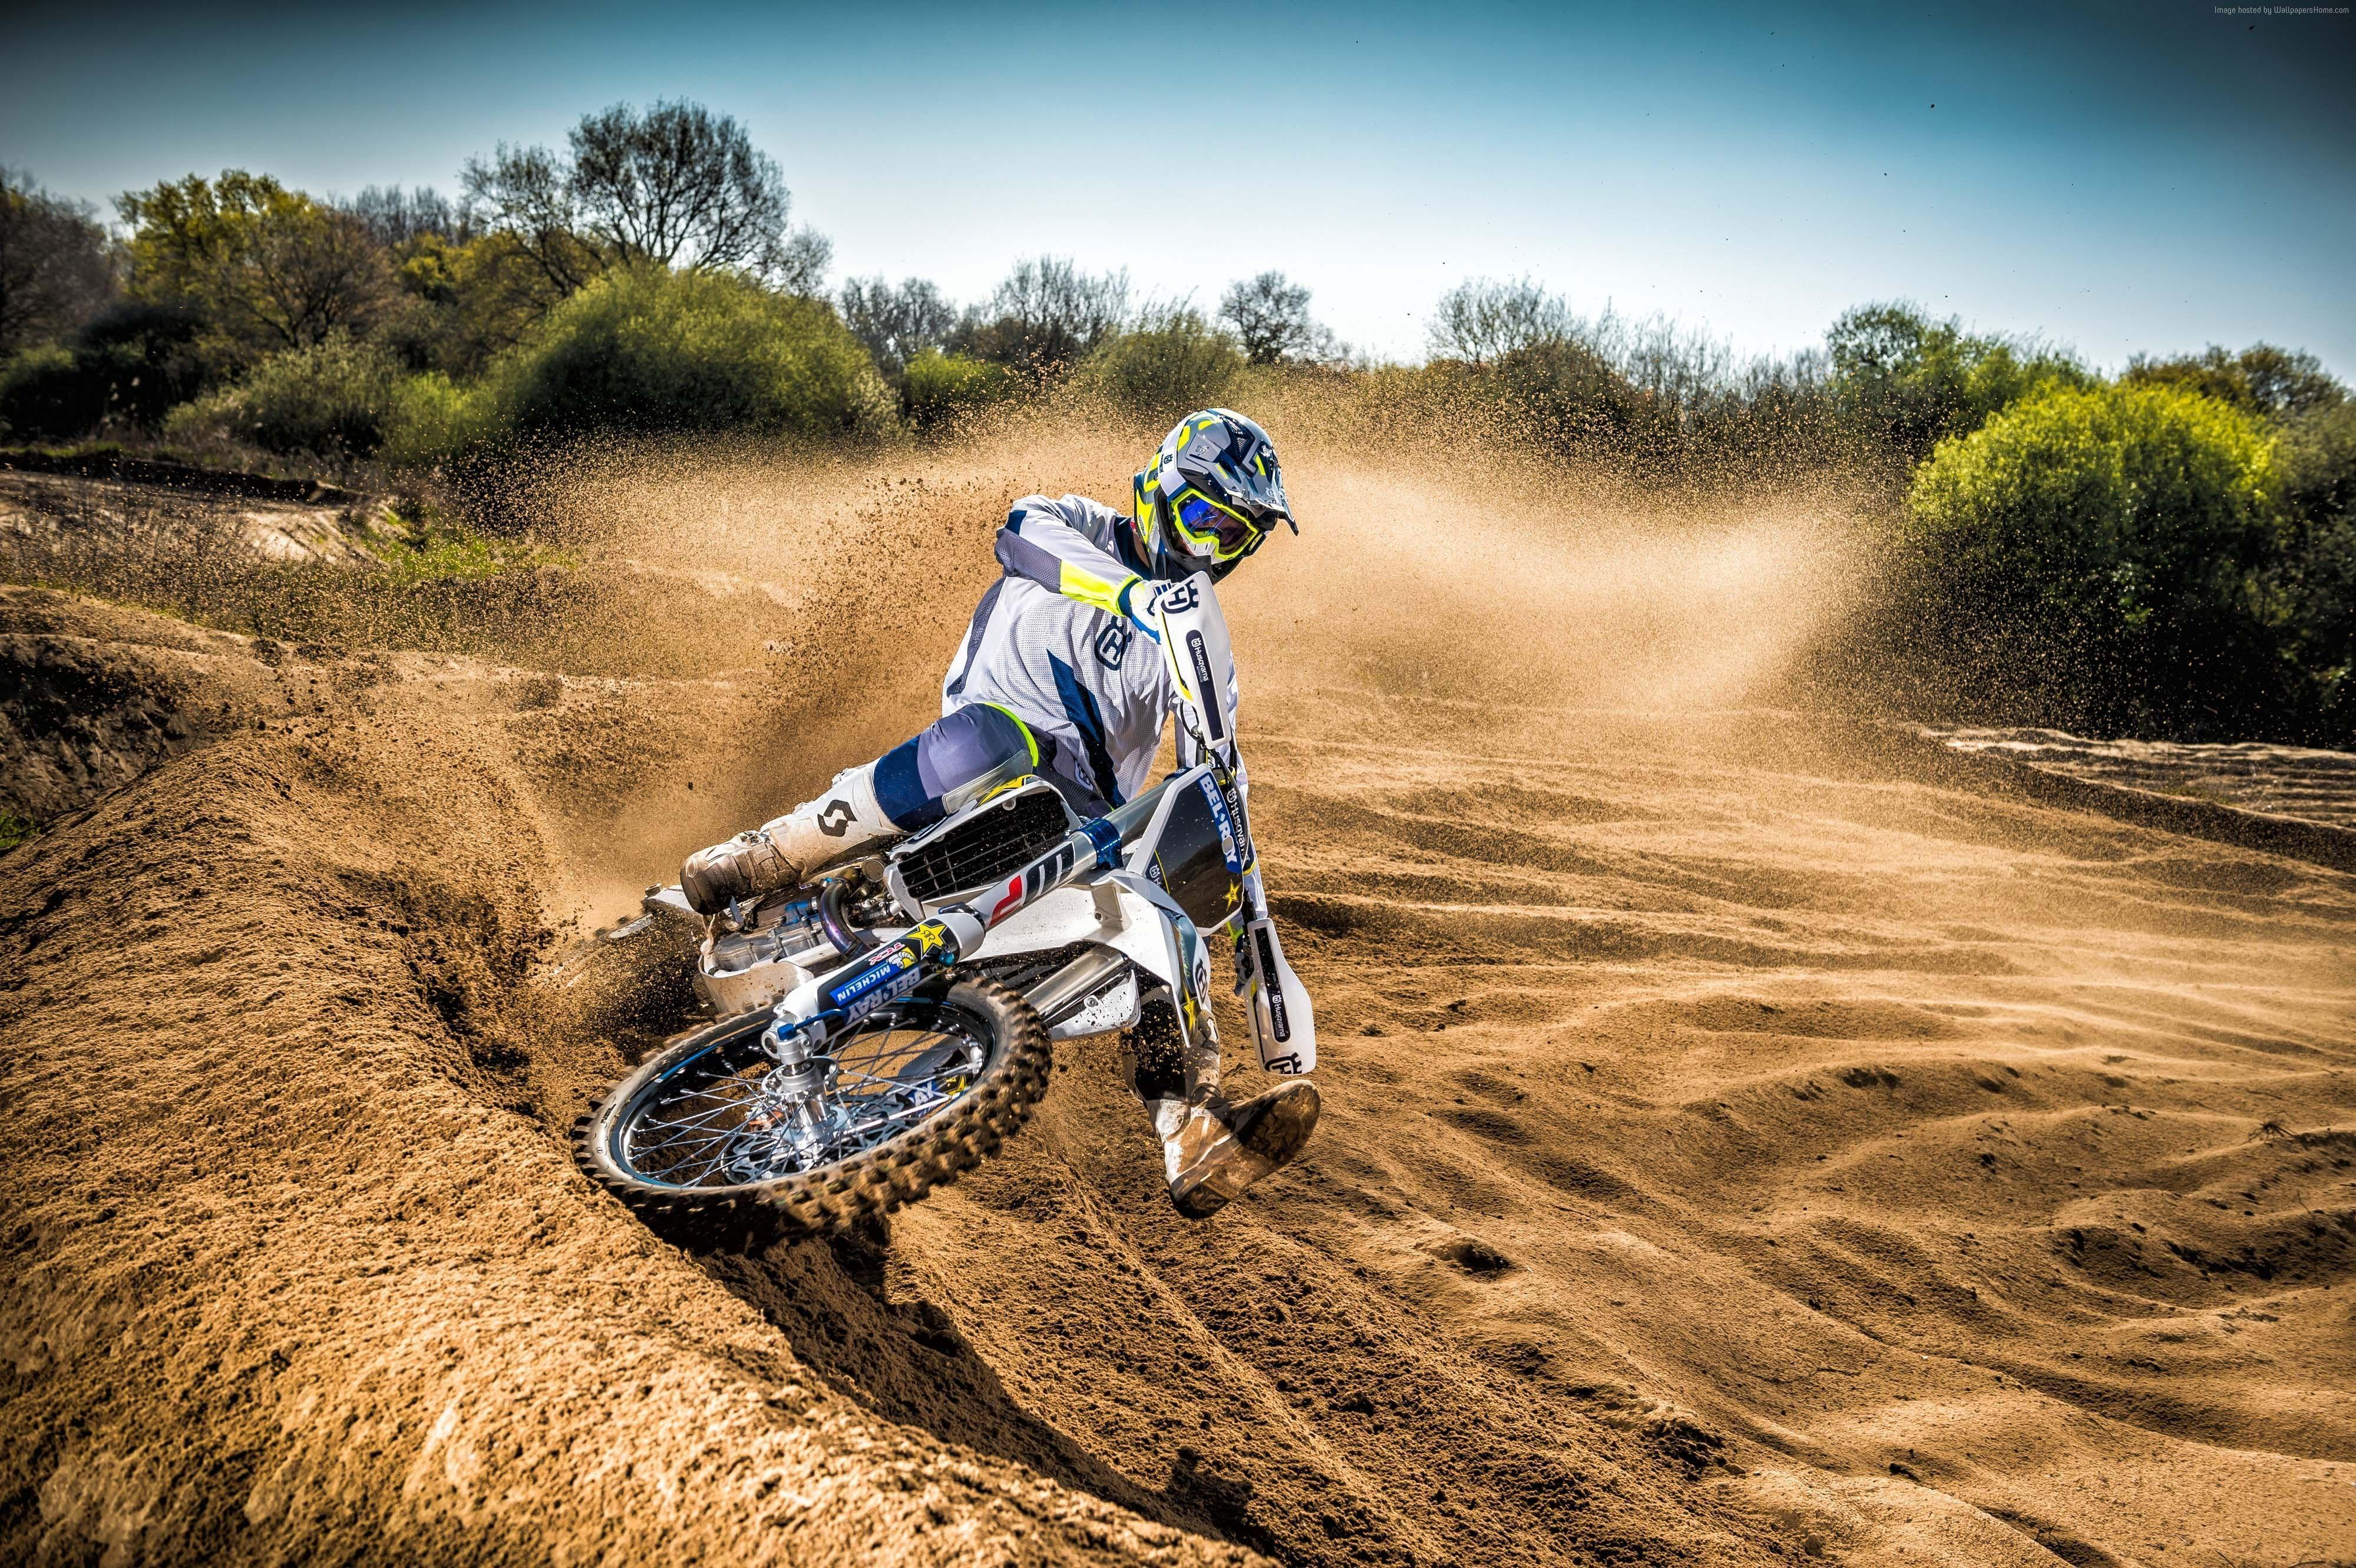 Motocross 2017 Wallpapers